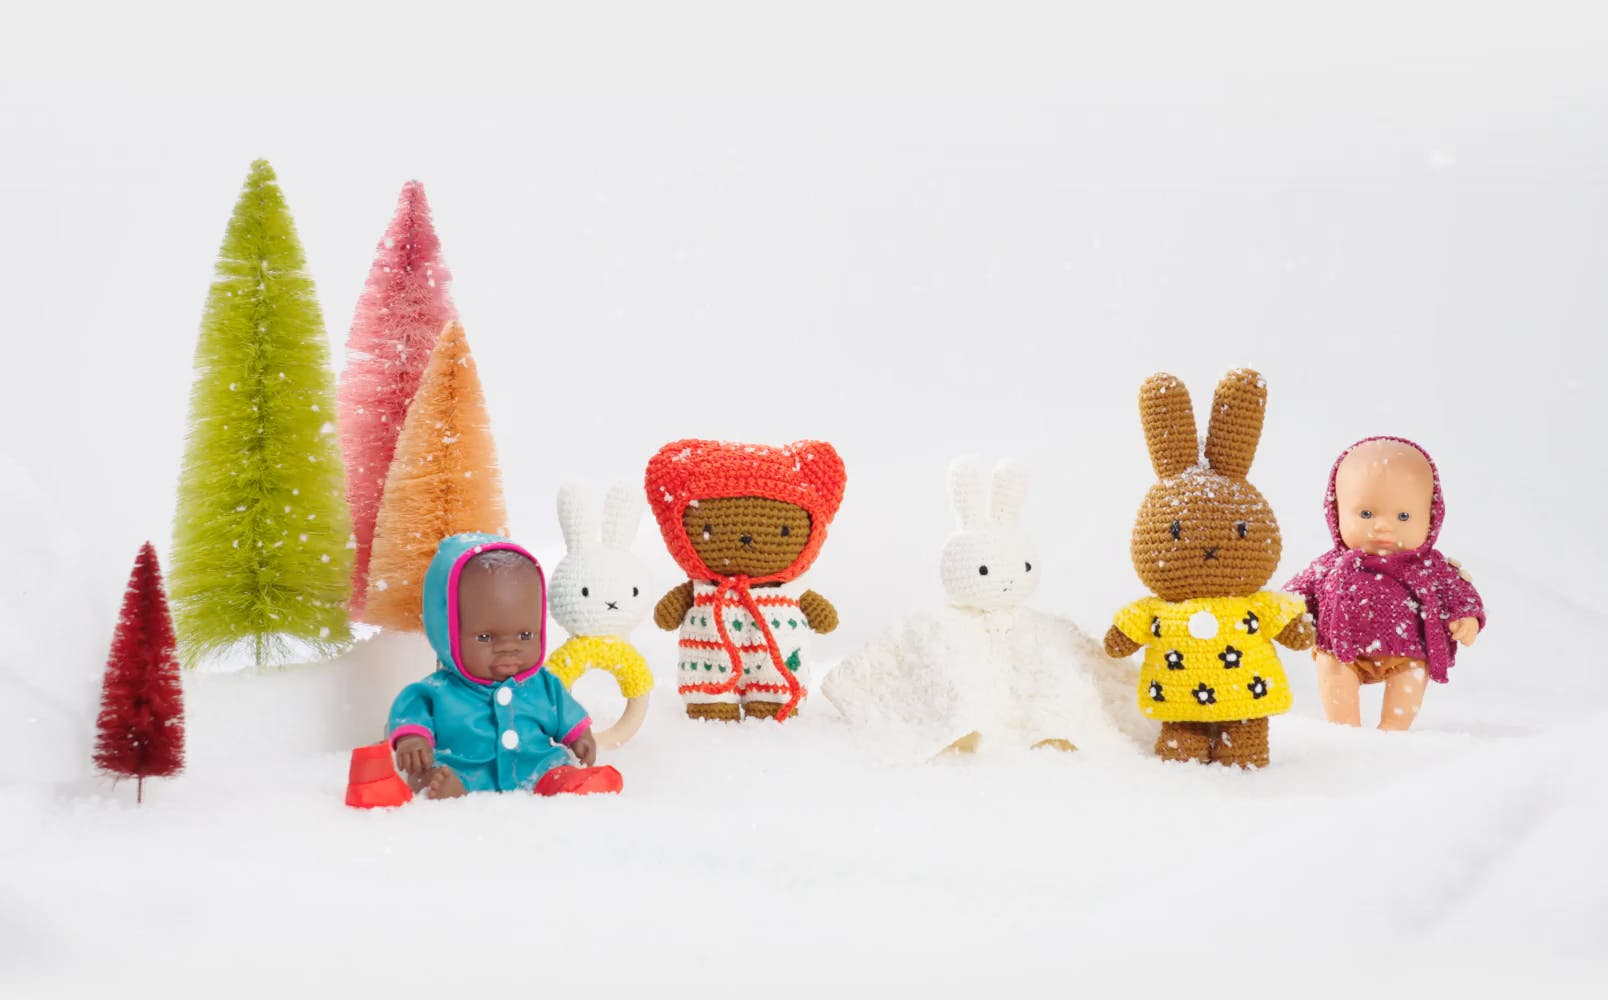 Playtime in 5, 4, 3: dolls and stuffed animals for kids.